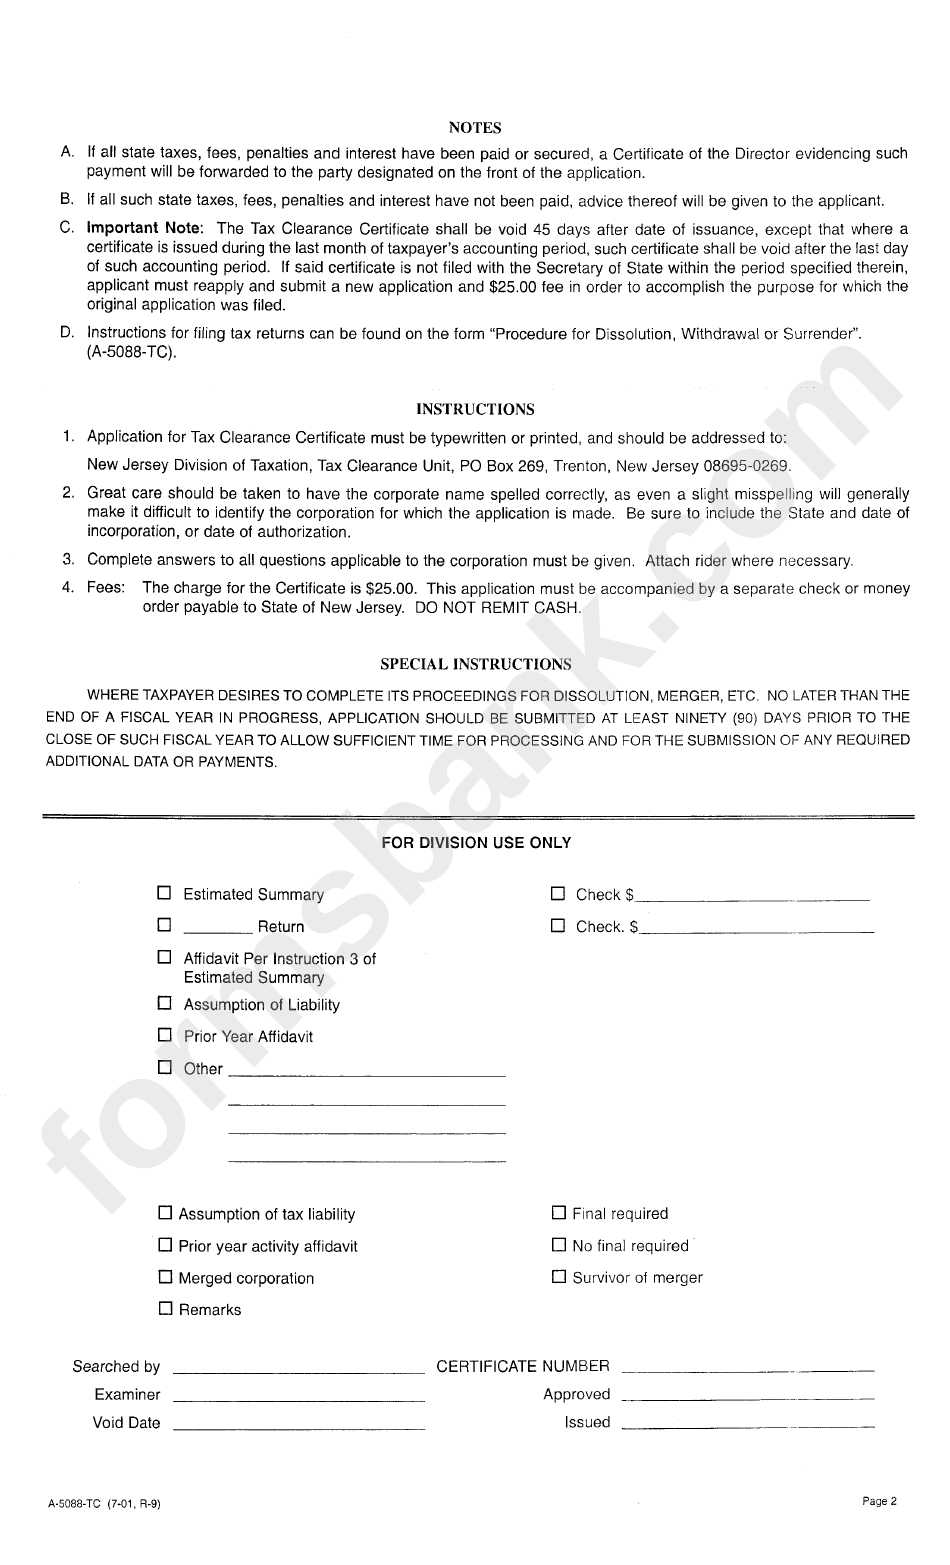 clearance certificate tax form tc instructions pdf advertisement printable